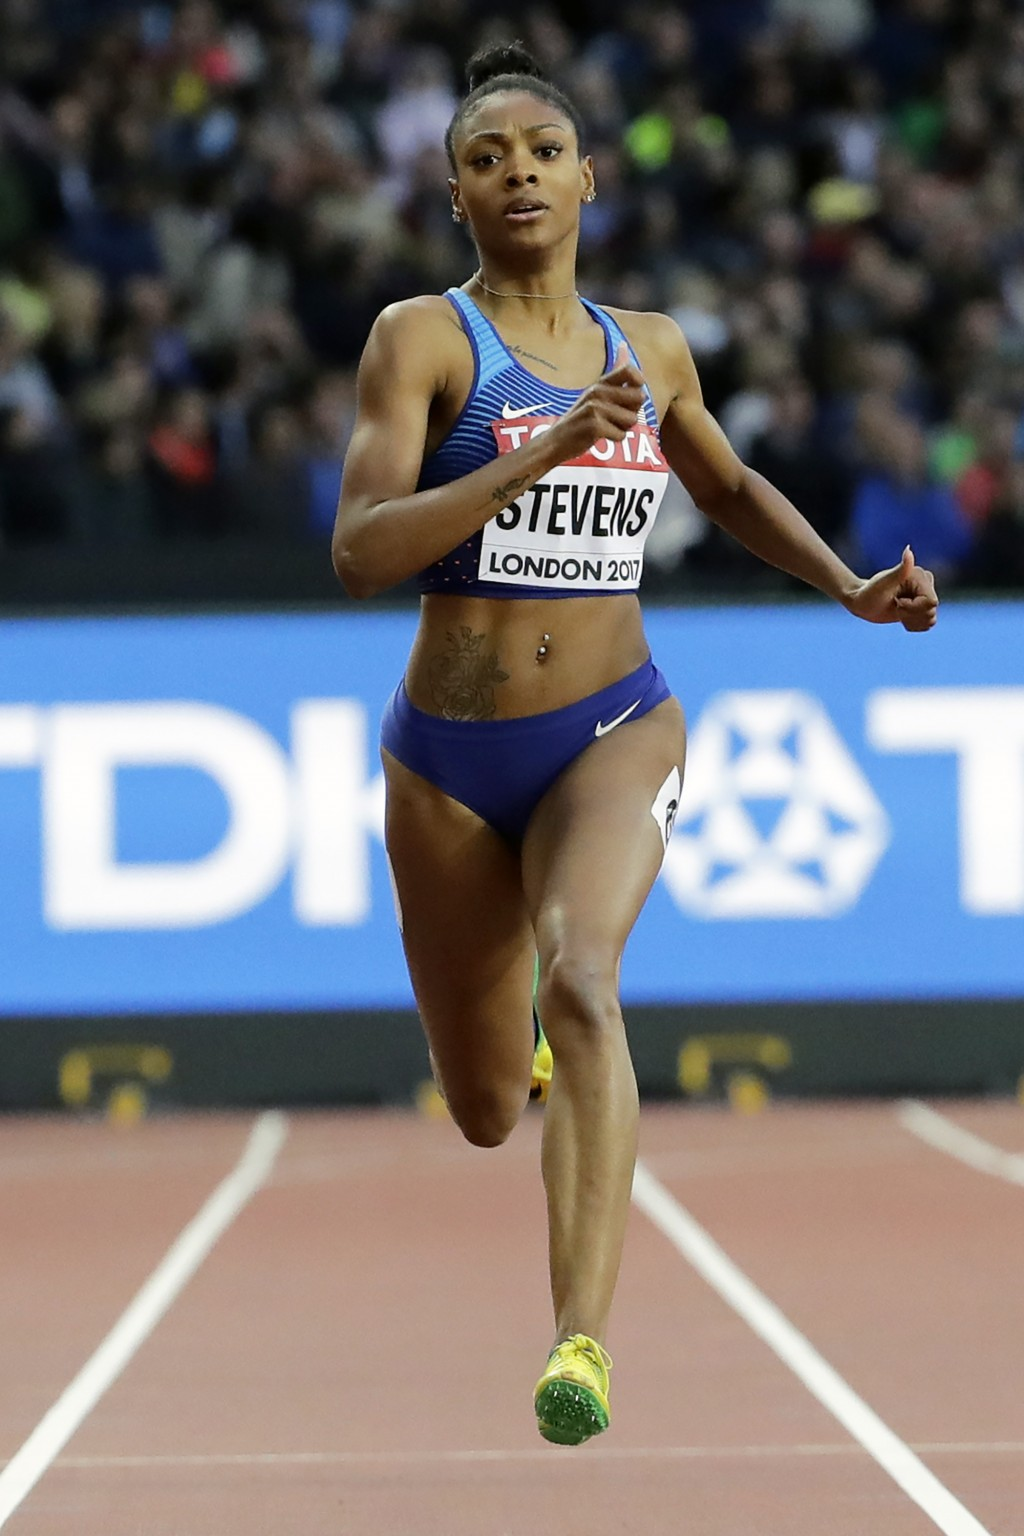 FILE - In this Aug. 8, 2017, file photo, United States' Deajah Stevens races in a women's 200m first round heat during the World Athletics Championshi...